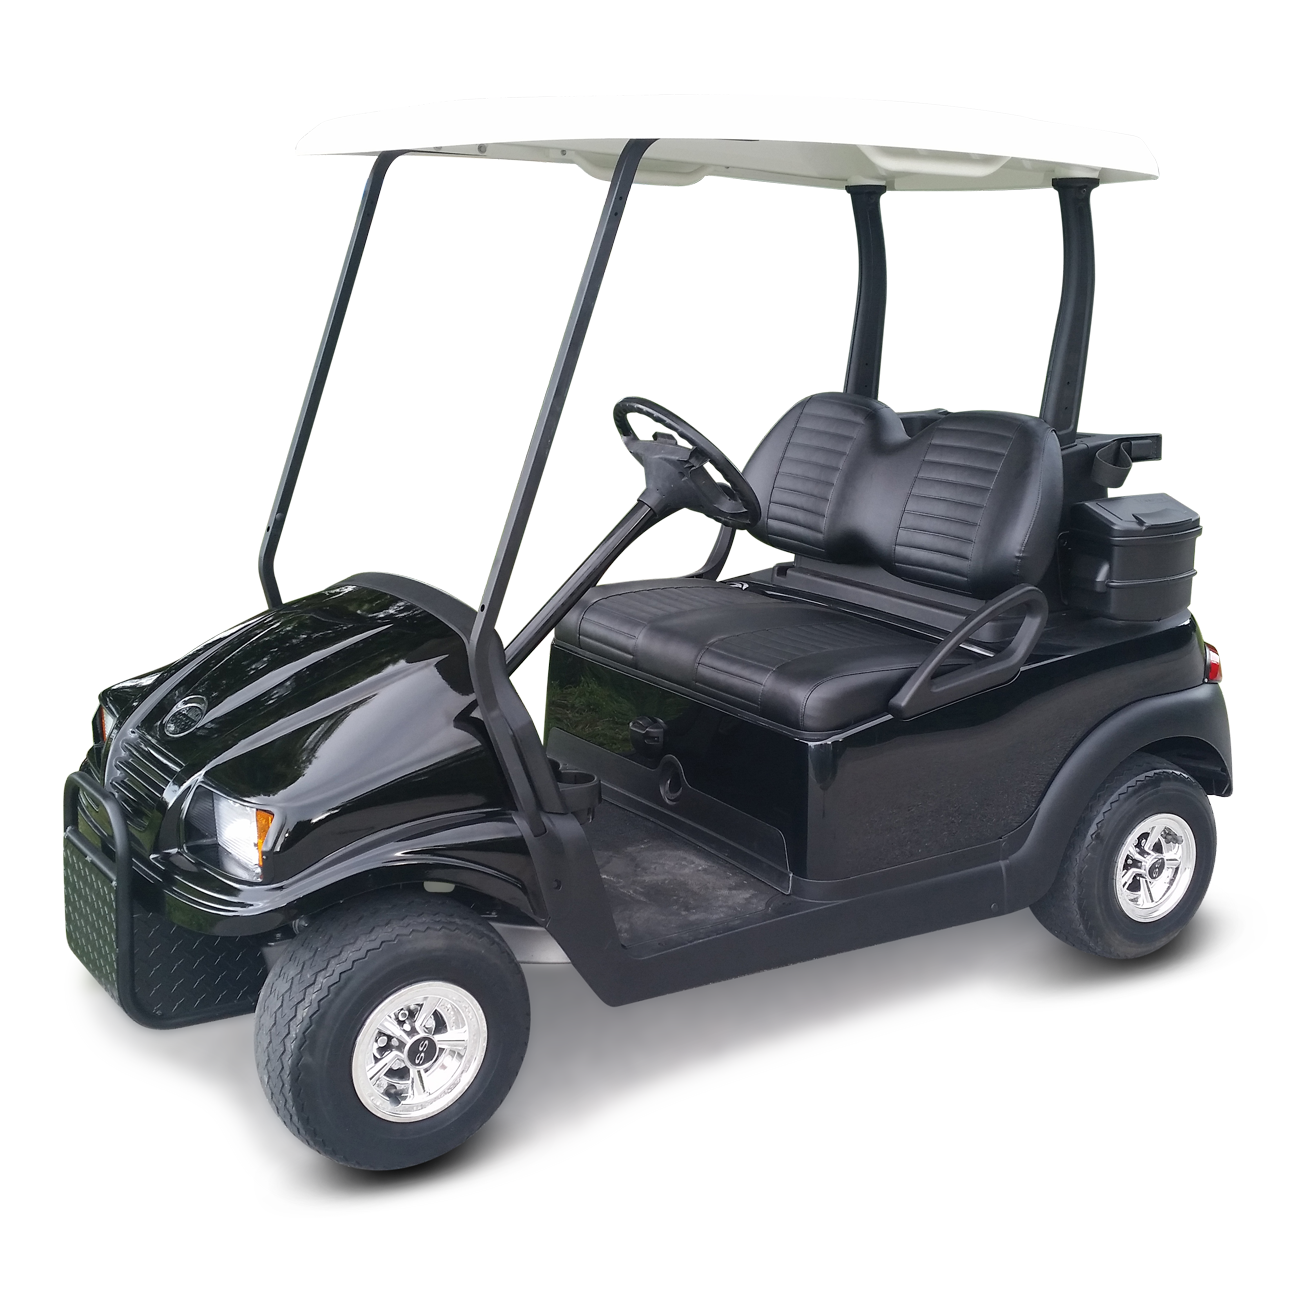 Copy of R2 Golf  (3)(1).png